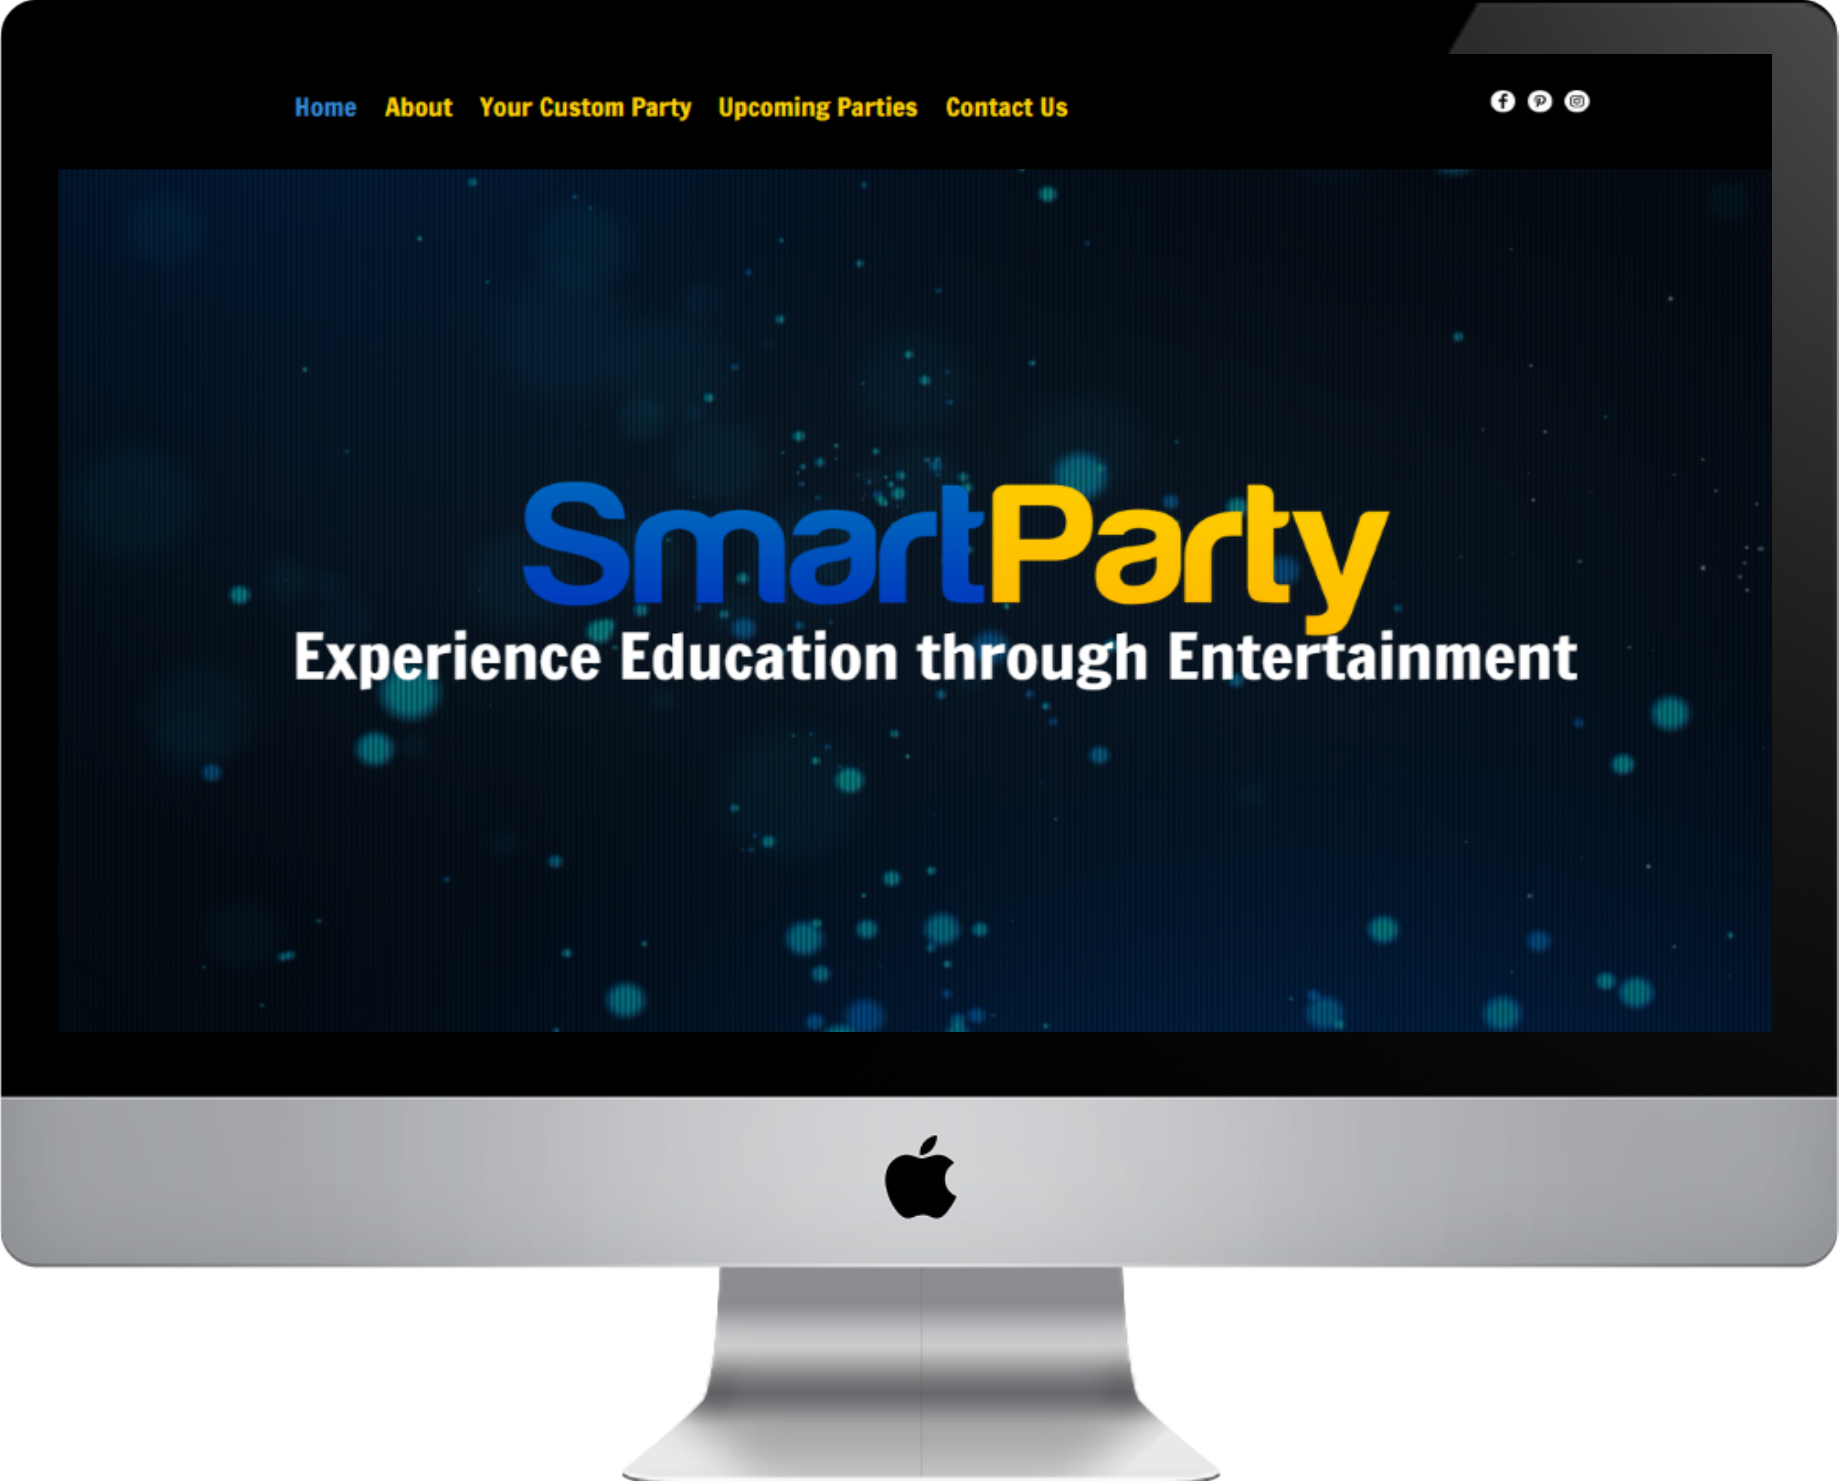 Smart Party